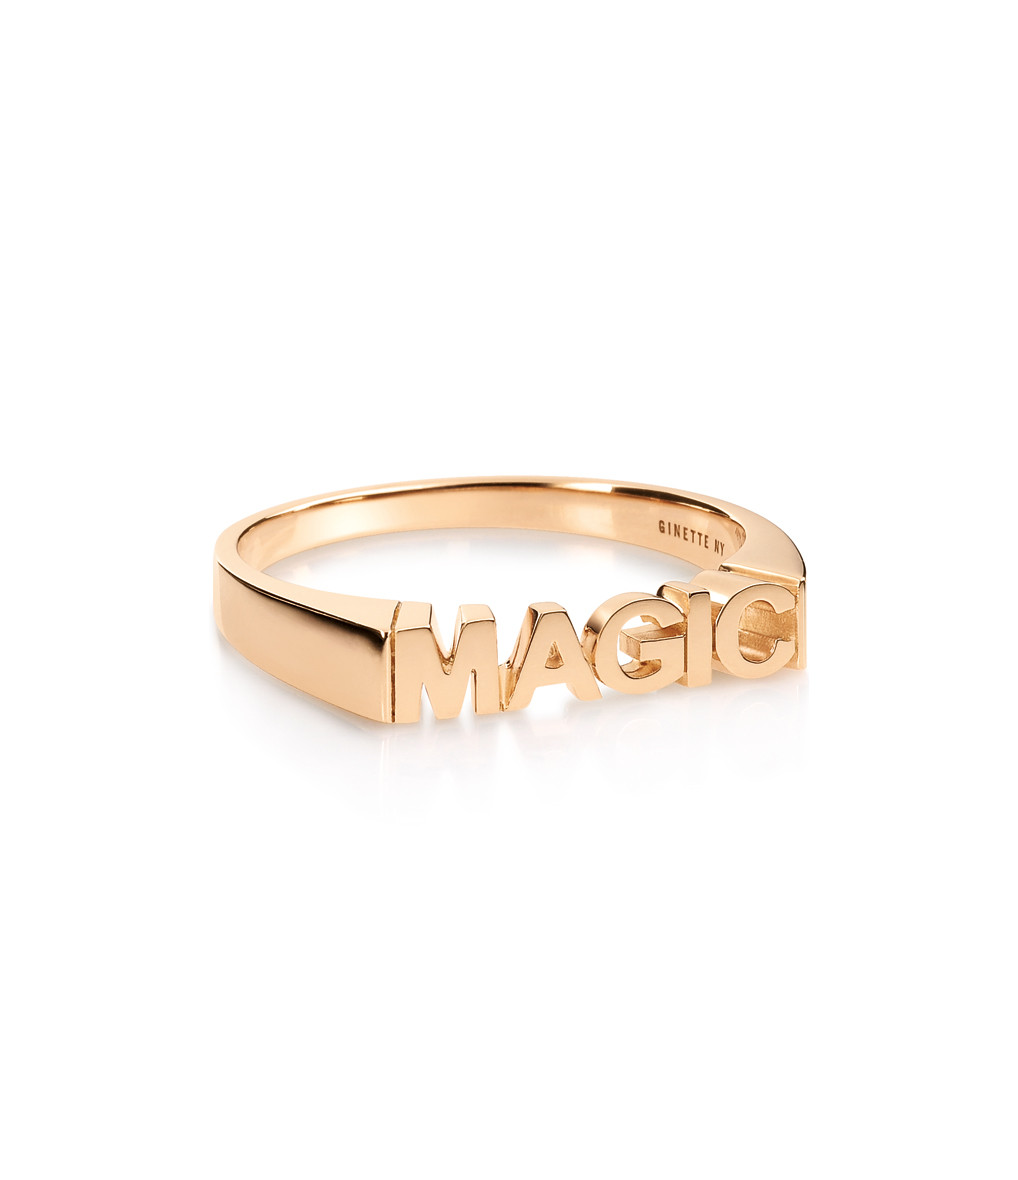 GINETTE_NY - Bague Fairies Magic Or Rose